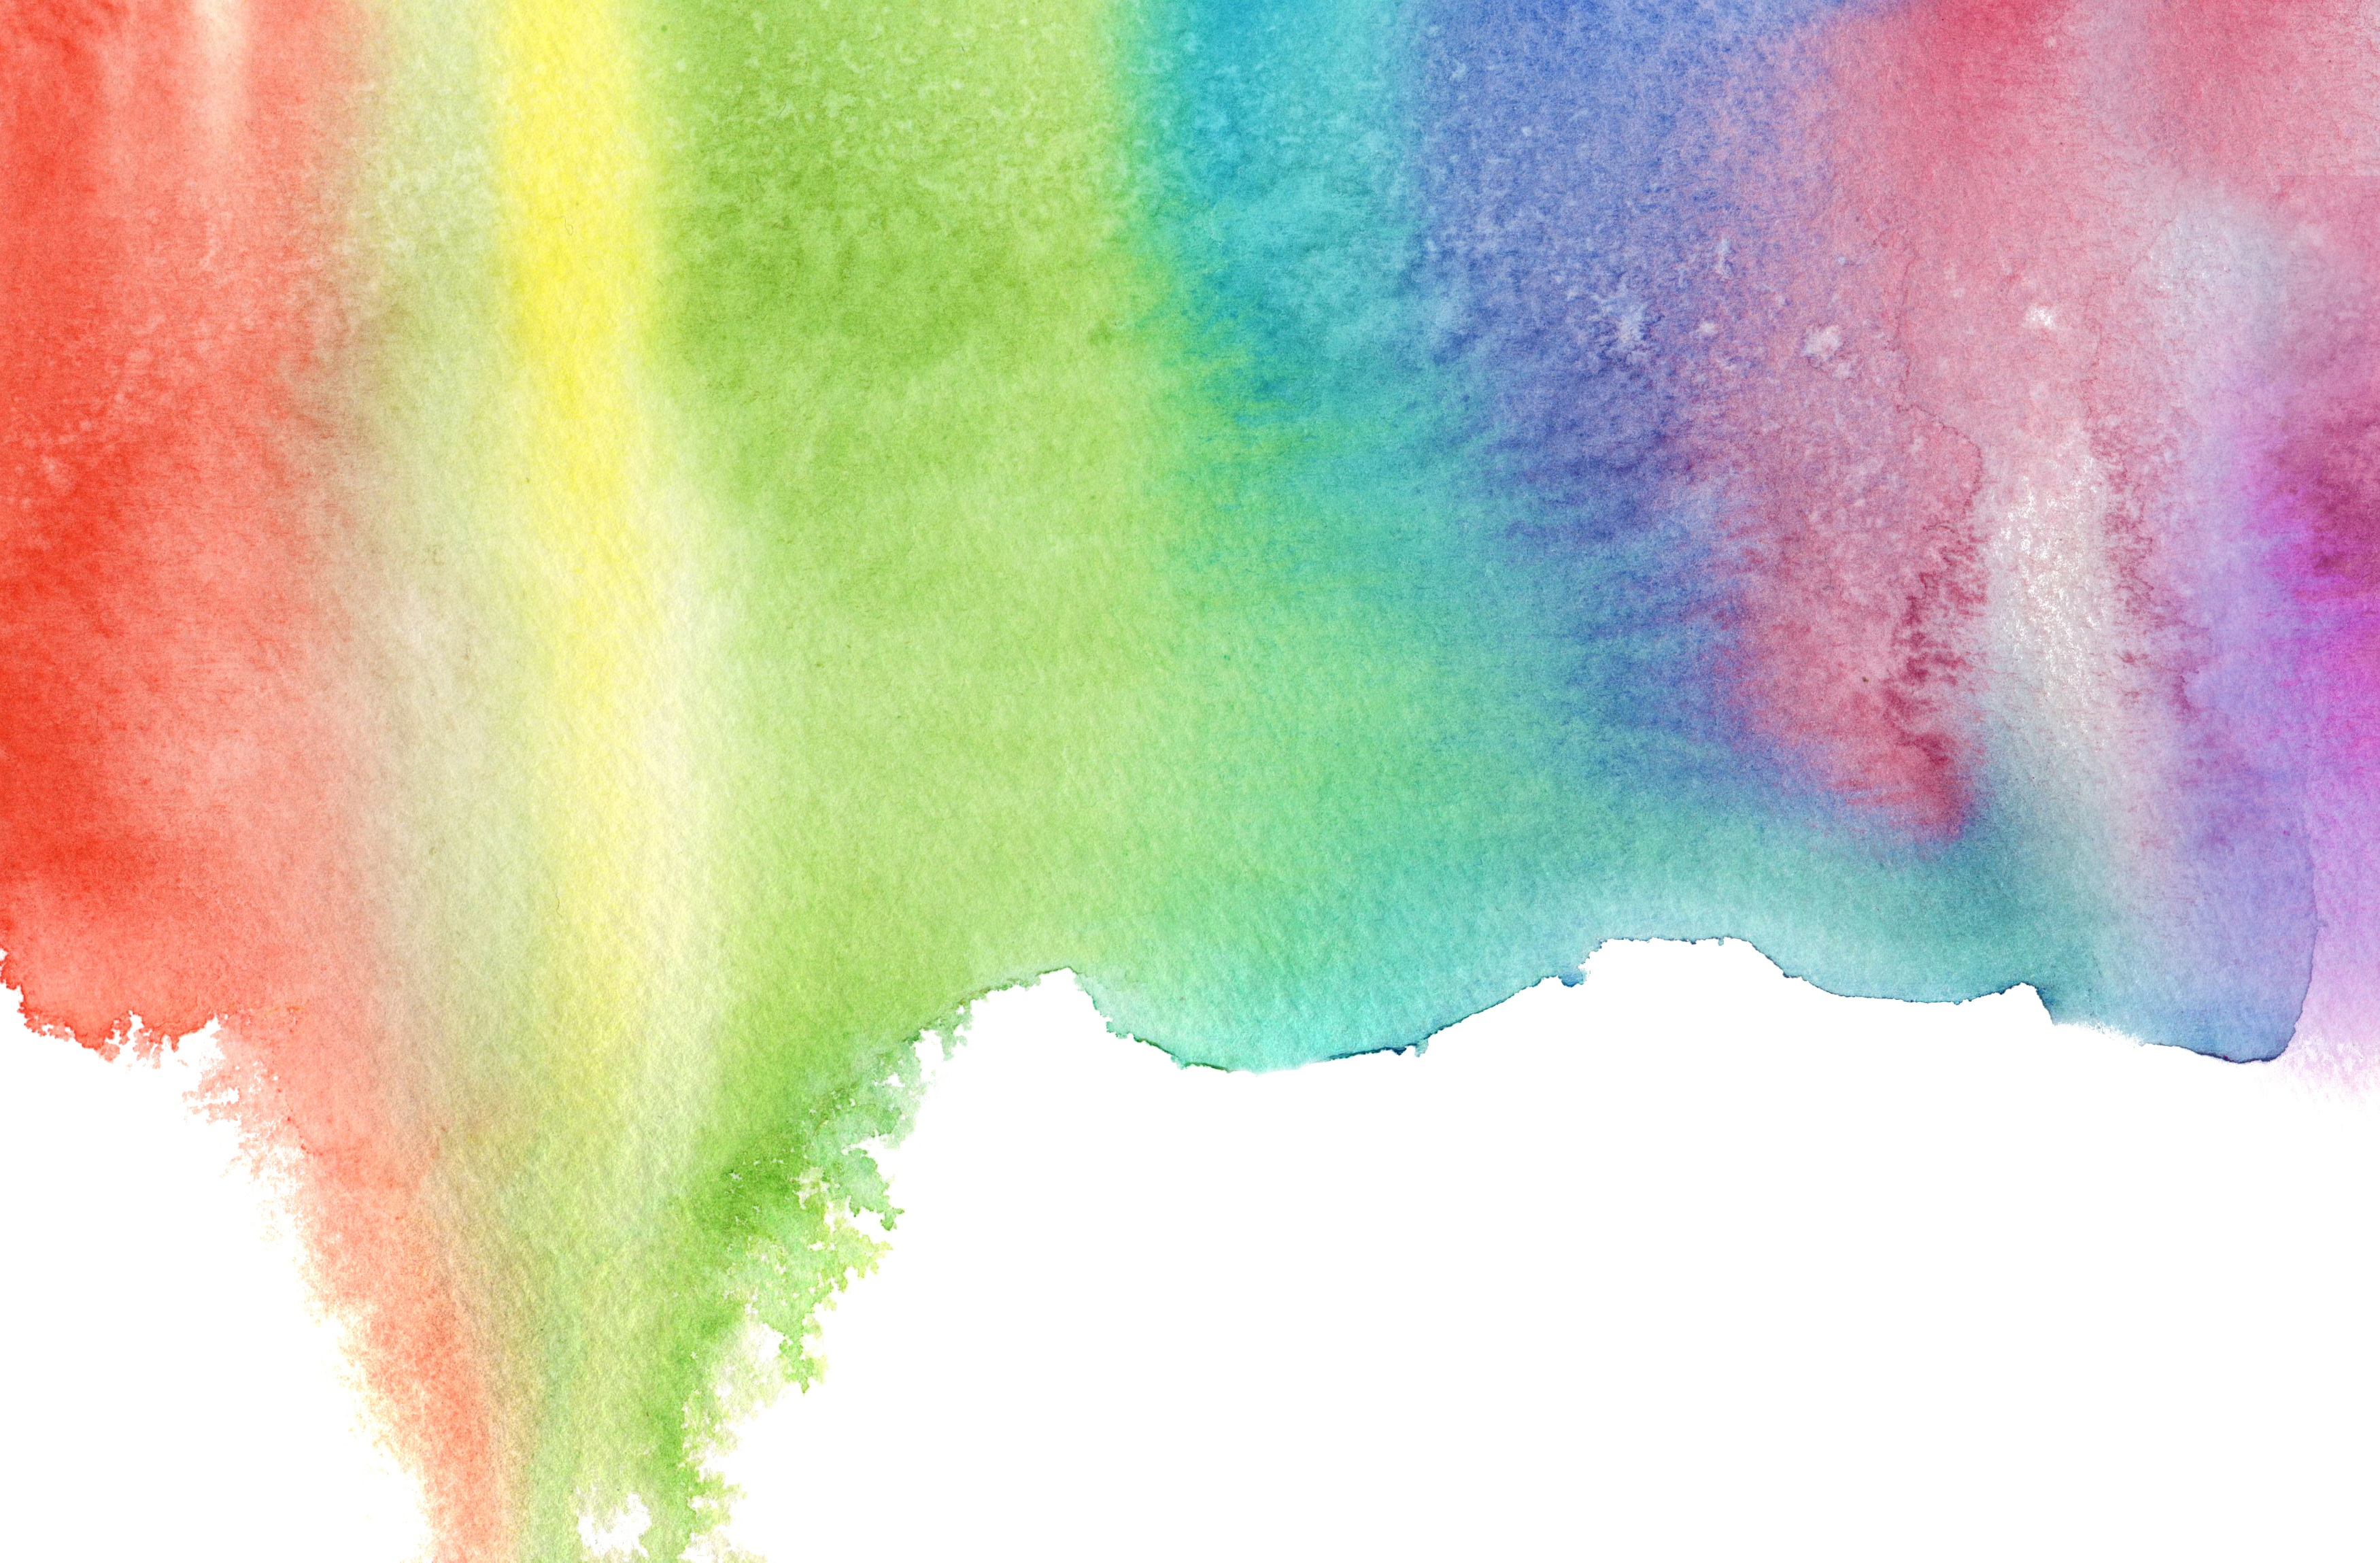 Rainbow watercolor dripping